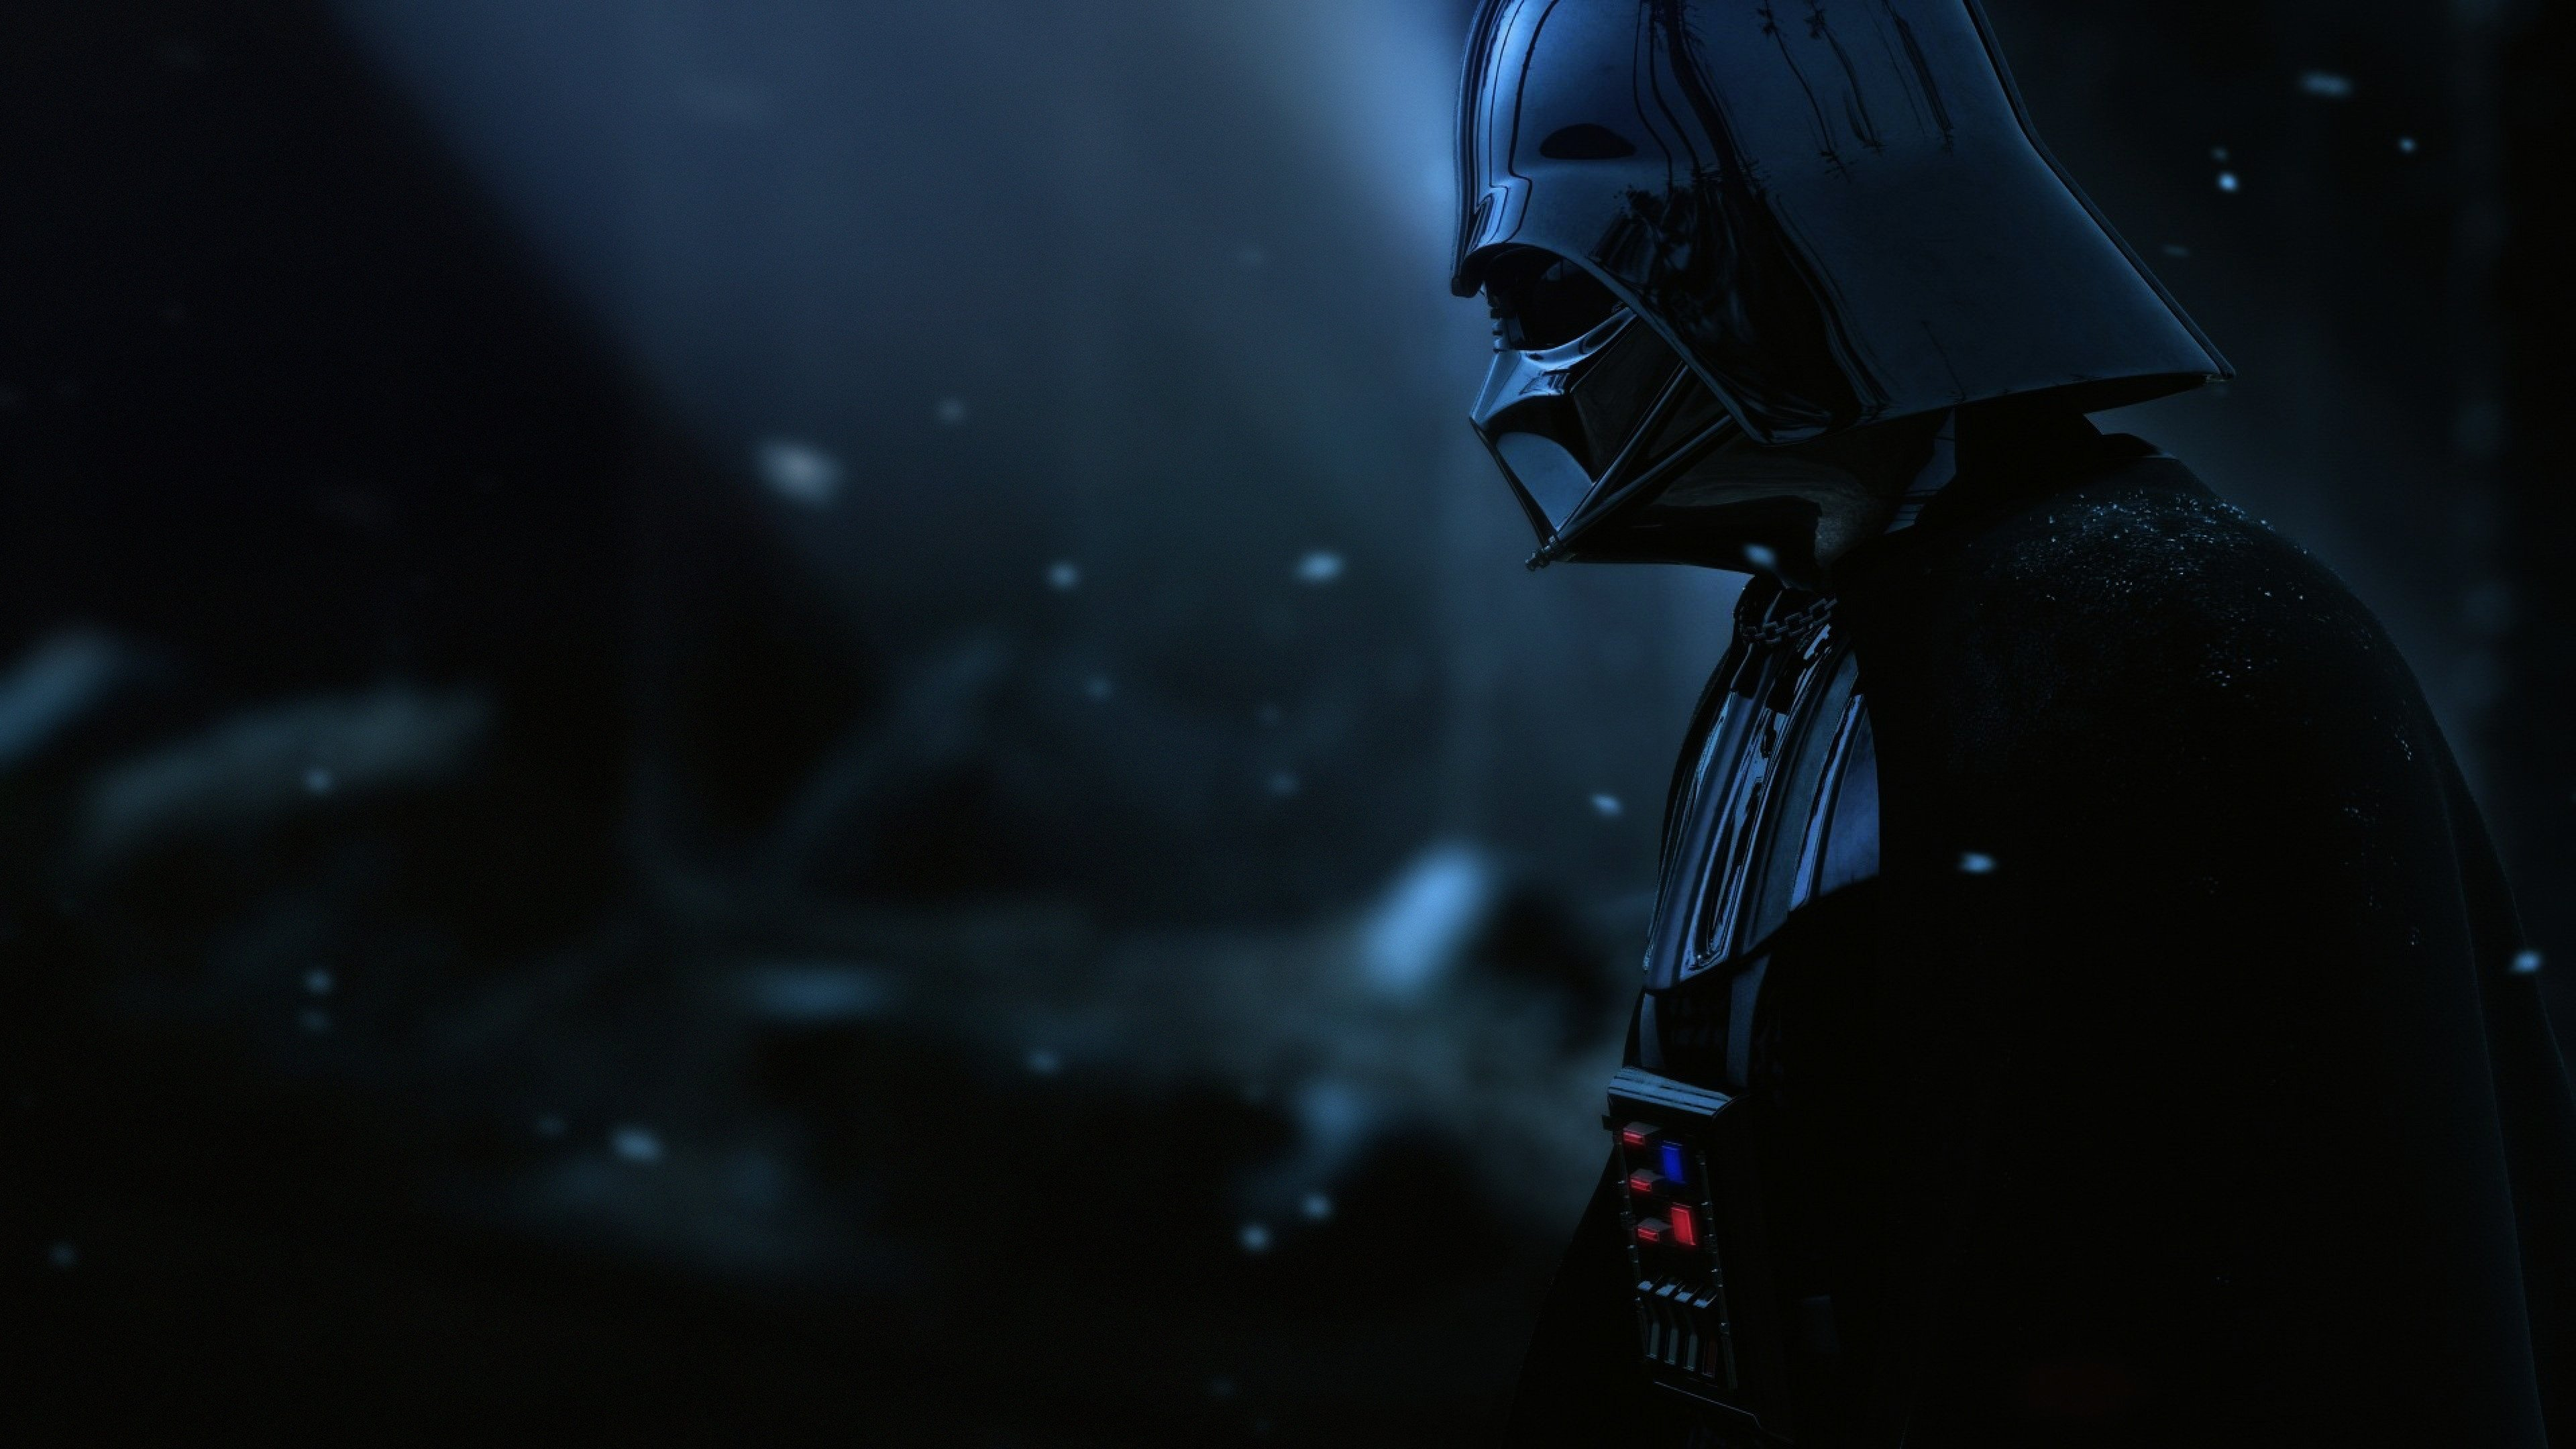 Vader Wallpapers, Photos And Desktop Backgrounds Up To 8K